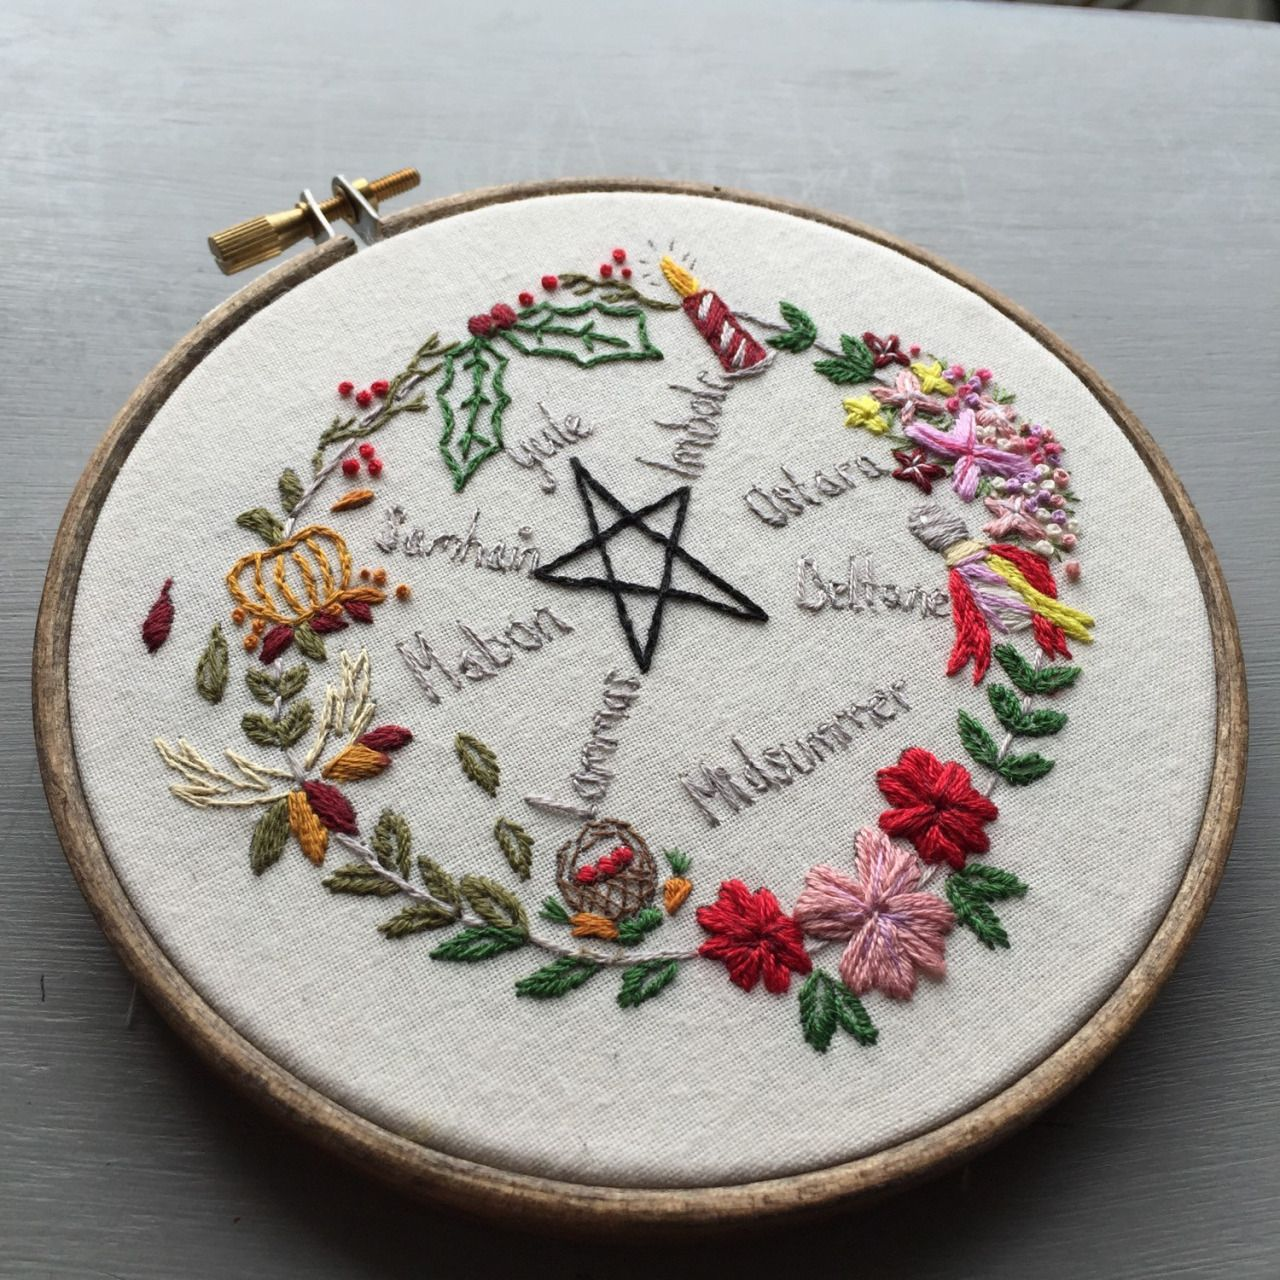 Witch aesthetic embroidery